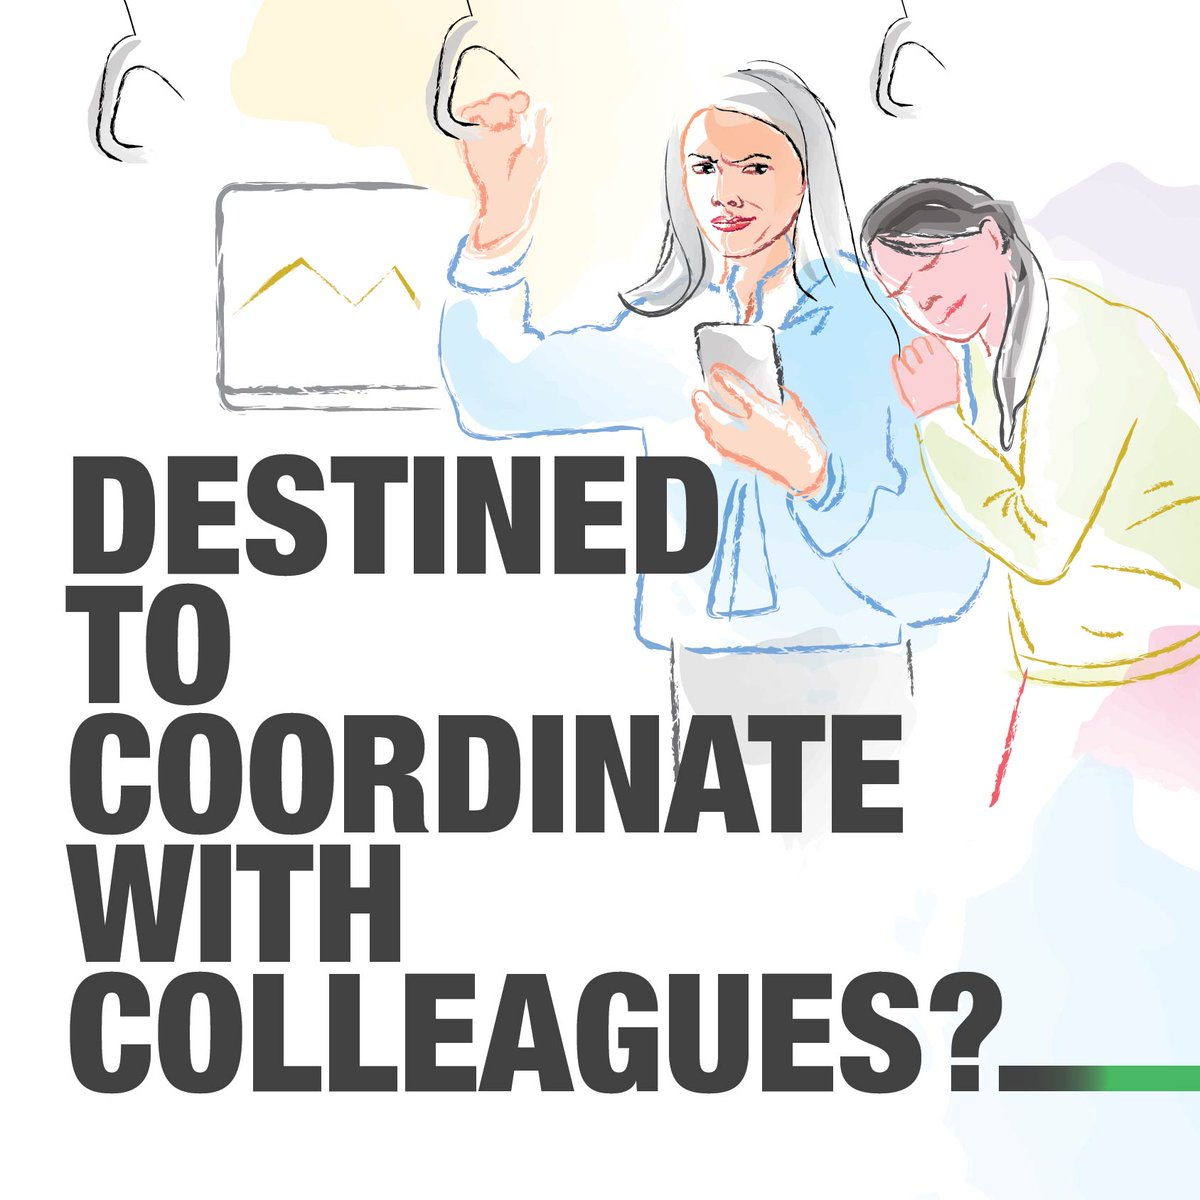 Coordination & communication is the key to achievement. Tiredness & fatigue results in the opposite.  #instagood #photooftheday #happy #instadaily #friends #repost  #life #remoteworker #stayhome #independent #remotejobs #remote #socialdistancing #virtualassistant #yoworkplace https://t.co/Cg0mL9Zx8T